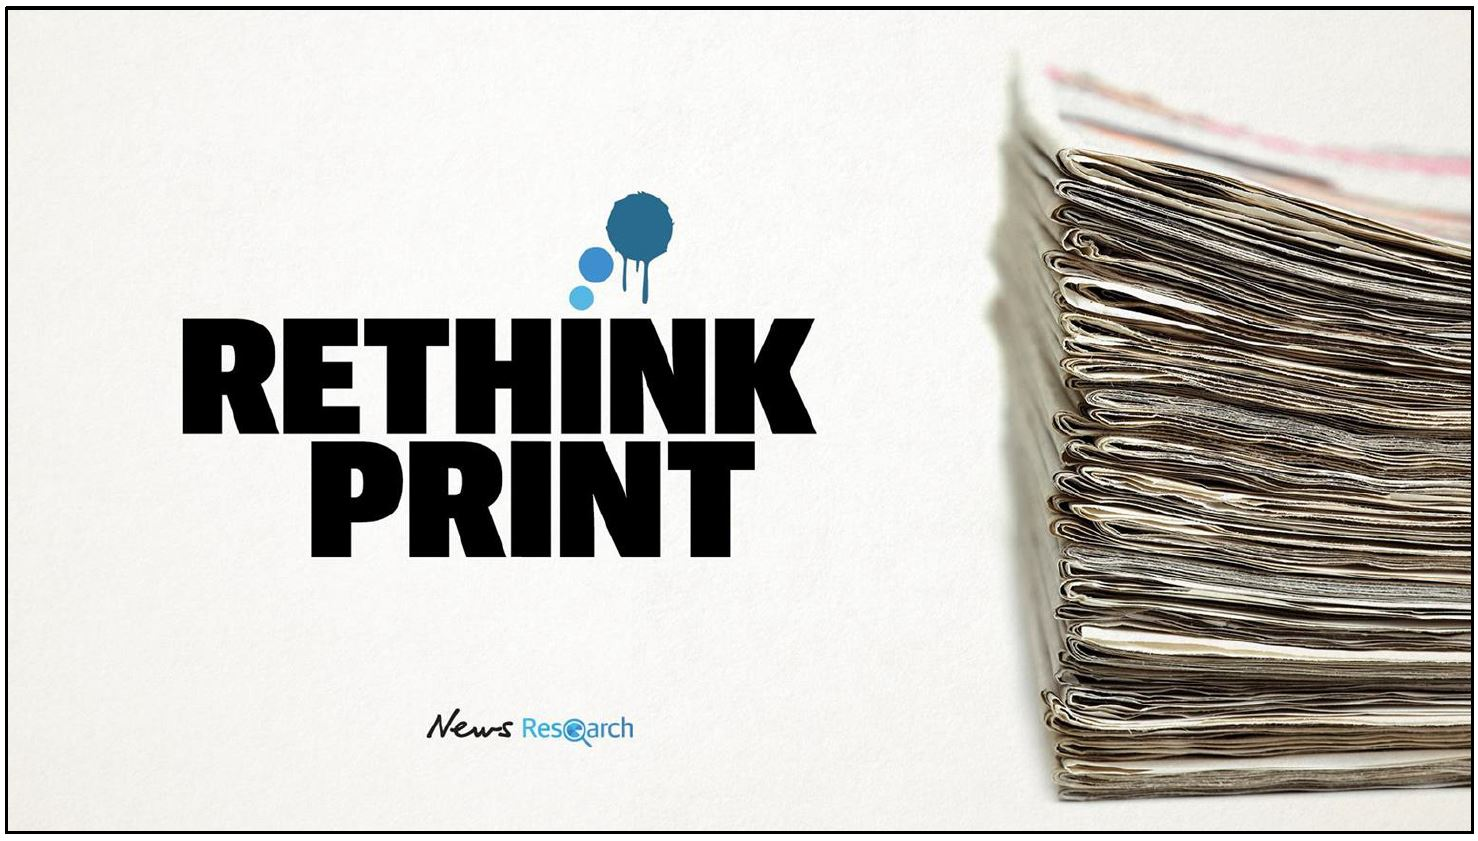 RETHINK PRINT : Challenging Perceptions of Newspapers